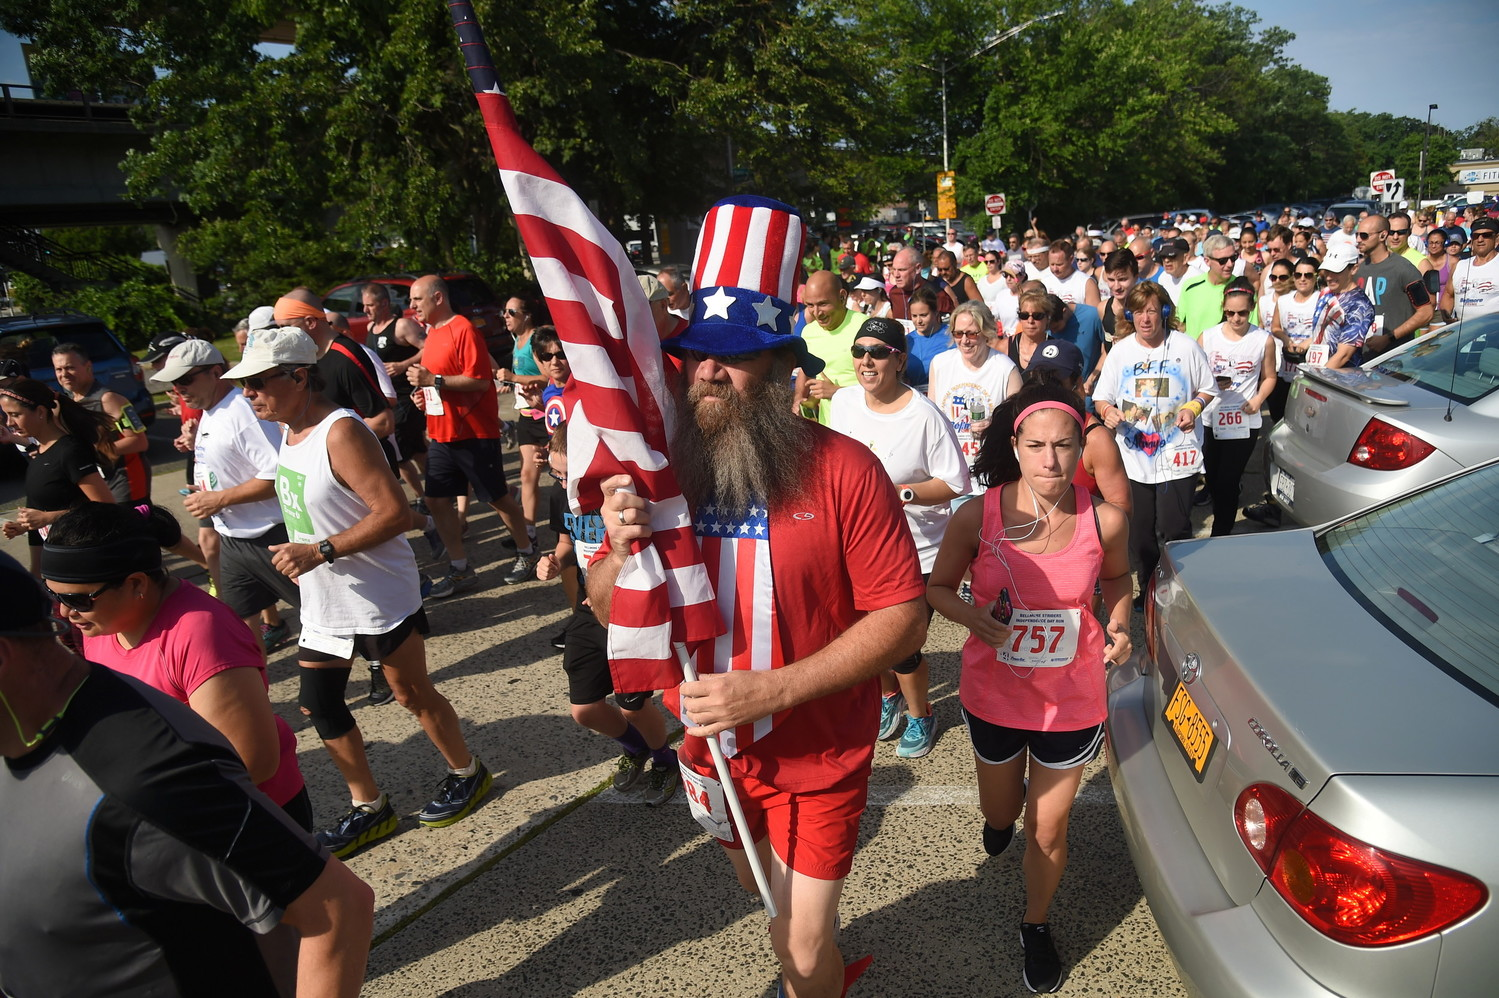 The Bellmore Striders Independence Day Run is always a colorful affair.